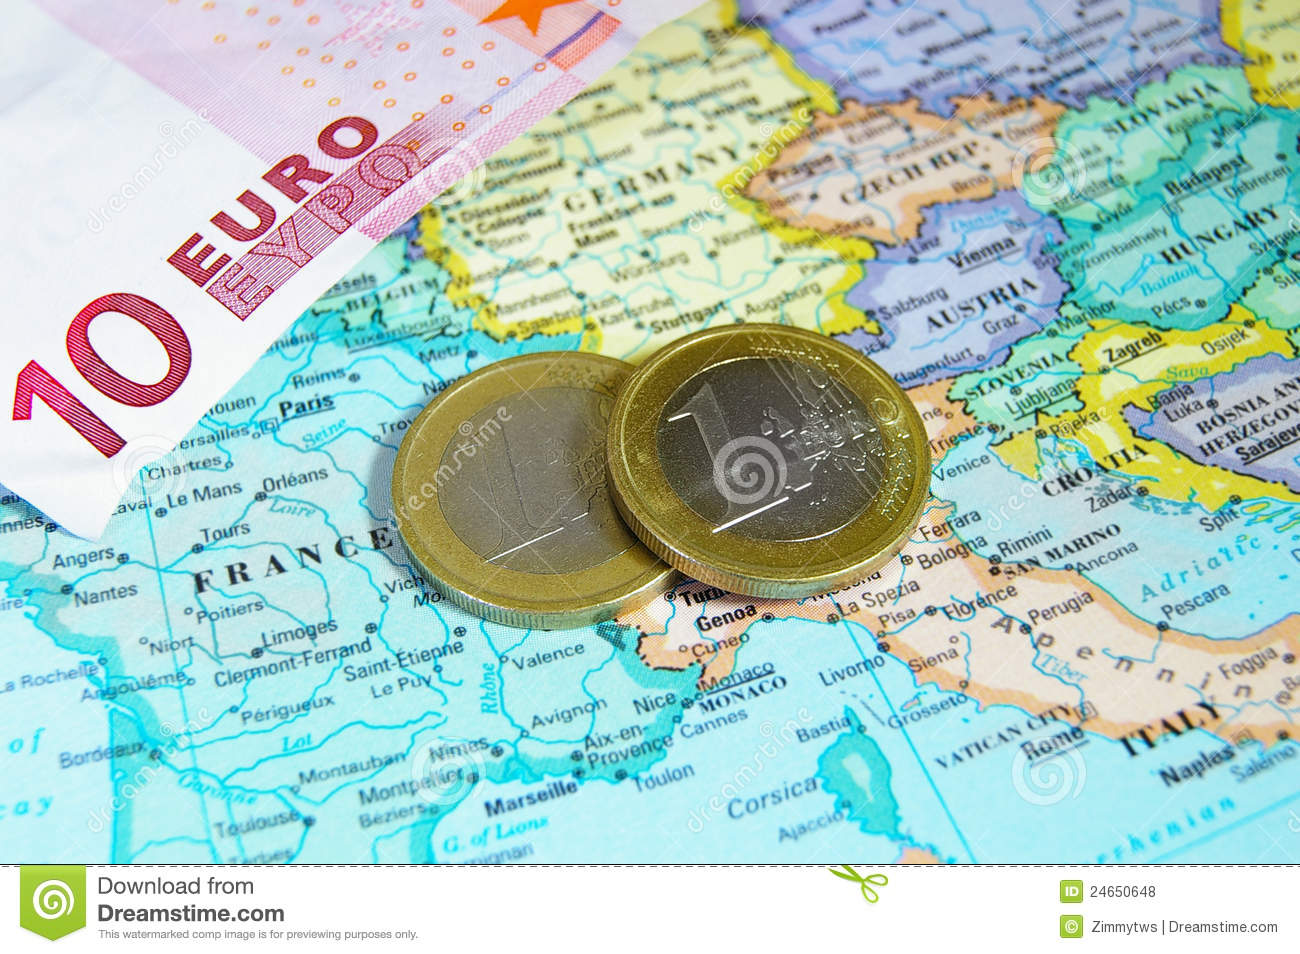 Europe and Euro coins